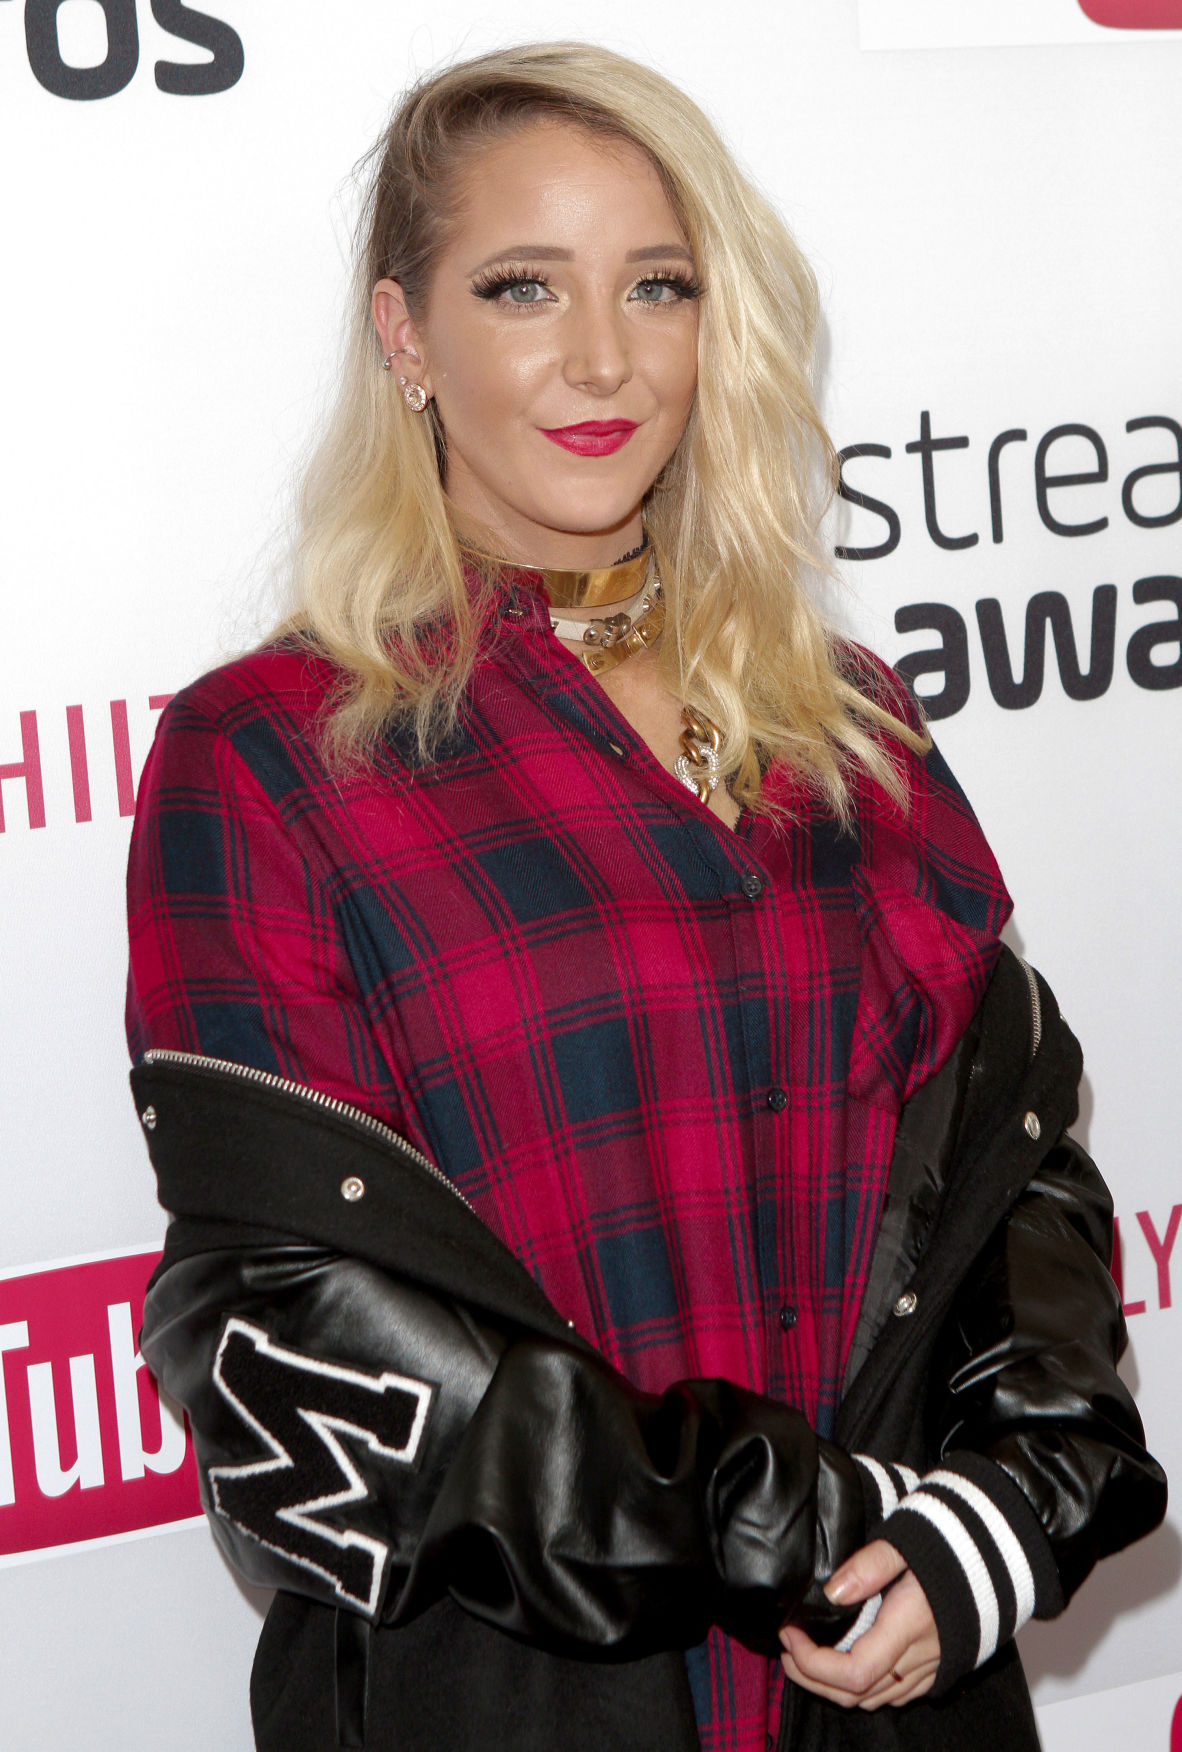 YouTube influencer Jenna Marbles quits her channel after blackface backlash